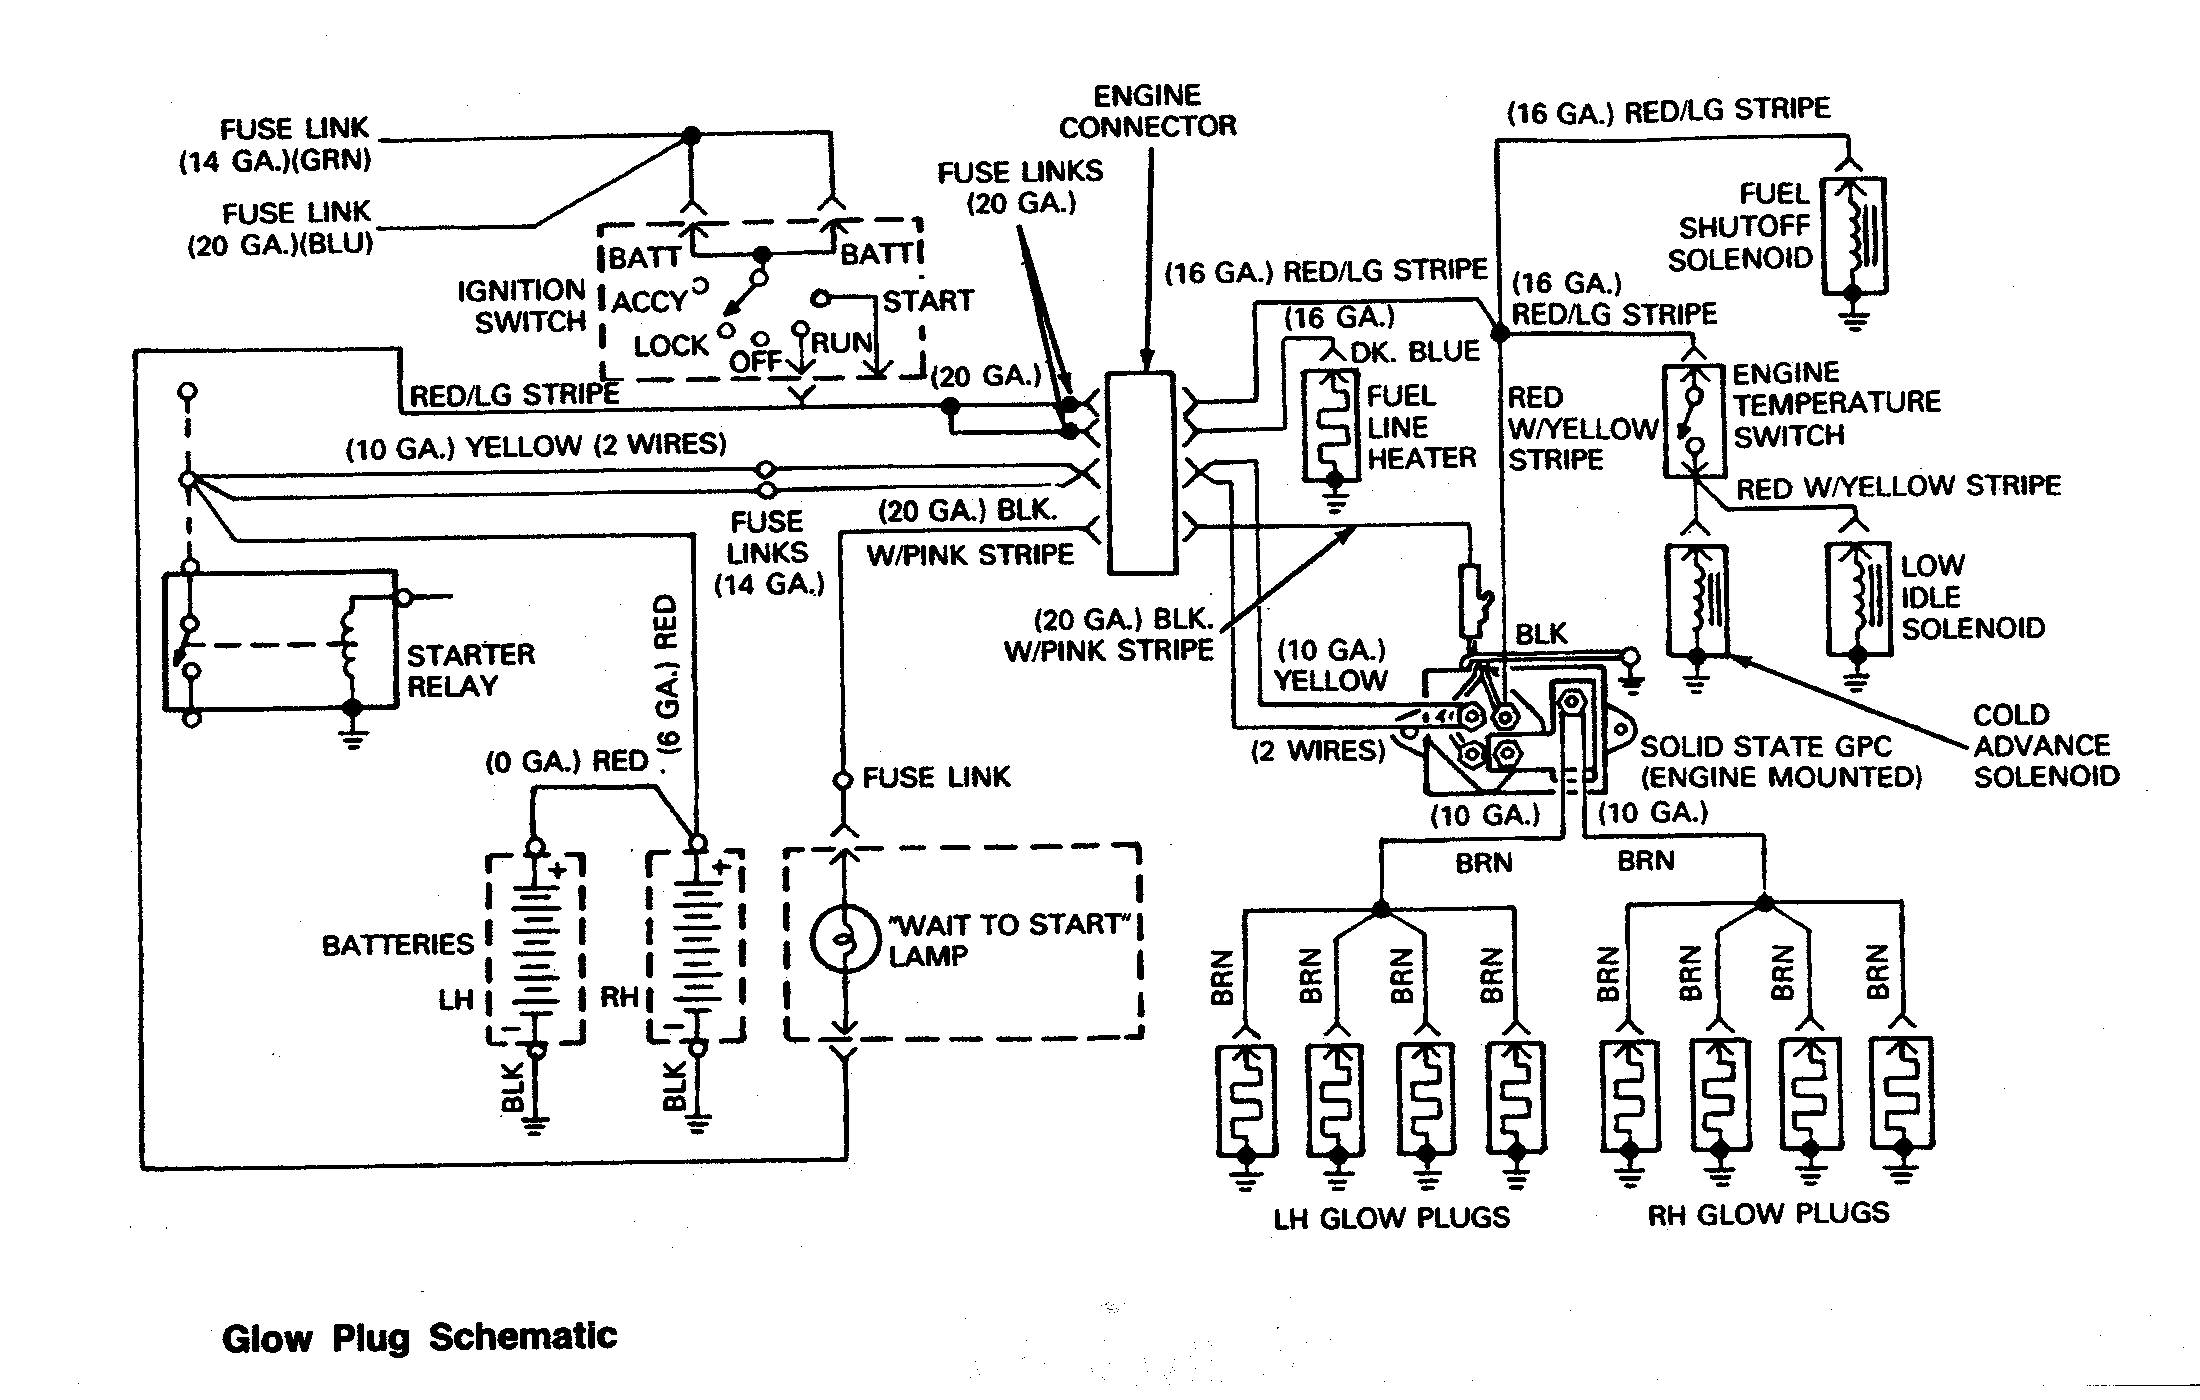 Ford 7 Plug Wiring Diagram Great Design Of Pin Trailer 3l Engine Harness Get Free Image About Way Rv